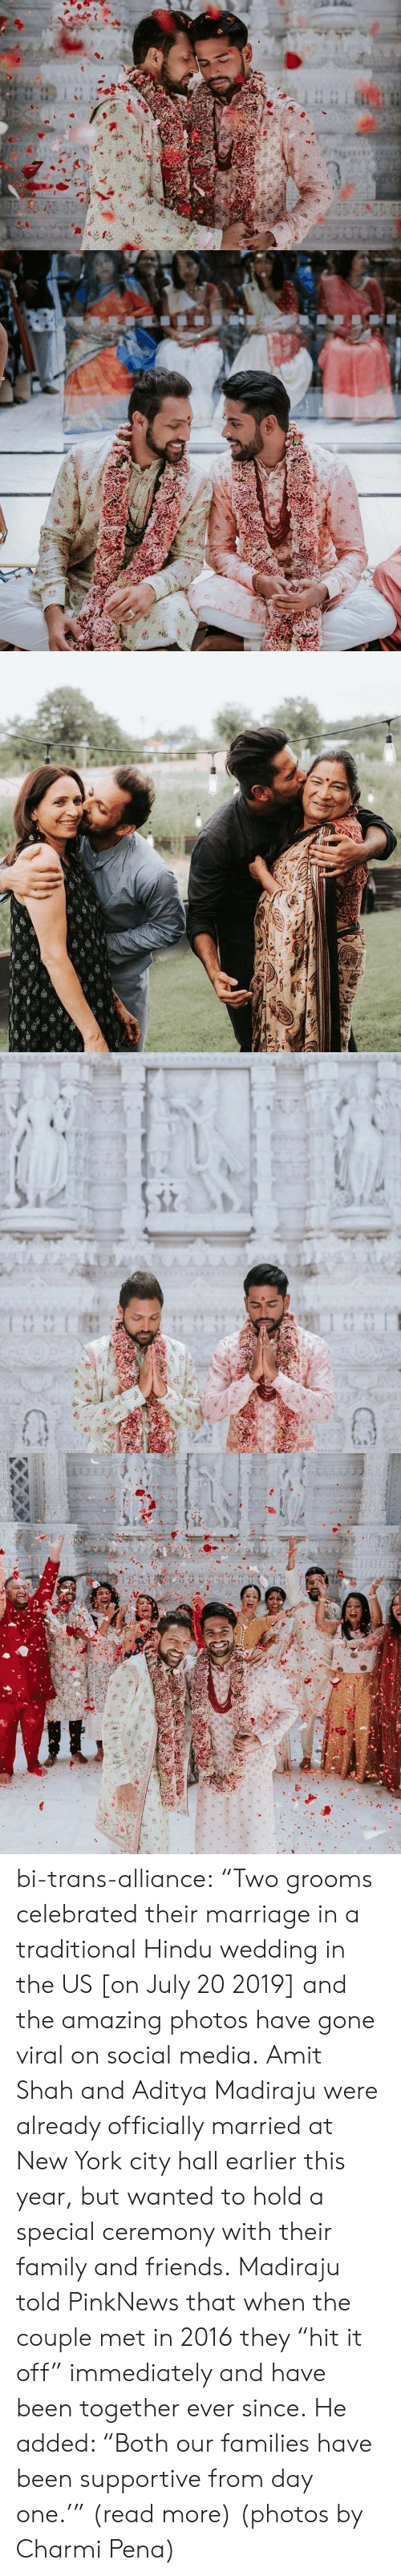 "city hall: TA A  AAAA  1 1 bi-trans-alliance:   ""Two grooms celebrated their marriage in a traditional Hindu wedding in the US [on July 20 2019] and the amazing photos have gone viral on social media.   Amit Shah and Aditya Madiraju were already officially married at New York city hall earlier this year, but wanted to hold a special ceremony with their family and friends. Madiraju told PinkNews that when the couple met in 2016 they ""hit it off"" immediately and have been together ever since. He added: ""Both our families have been supportive from day one.'"" (read more) (photos by Charmi Pena)"